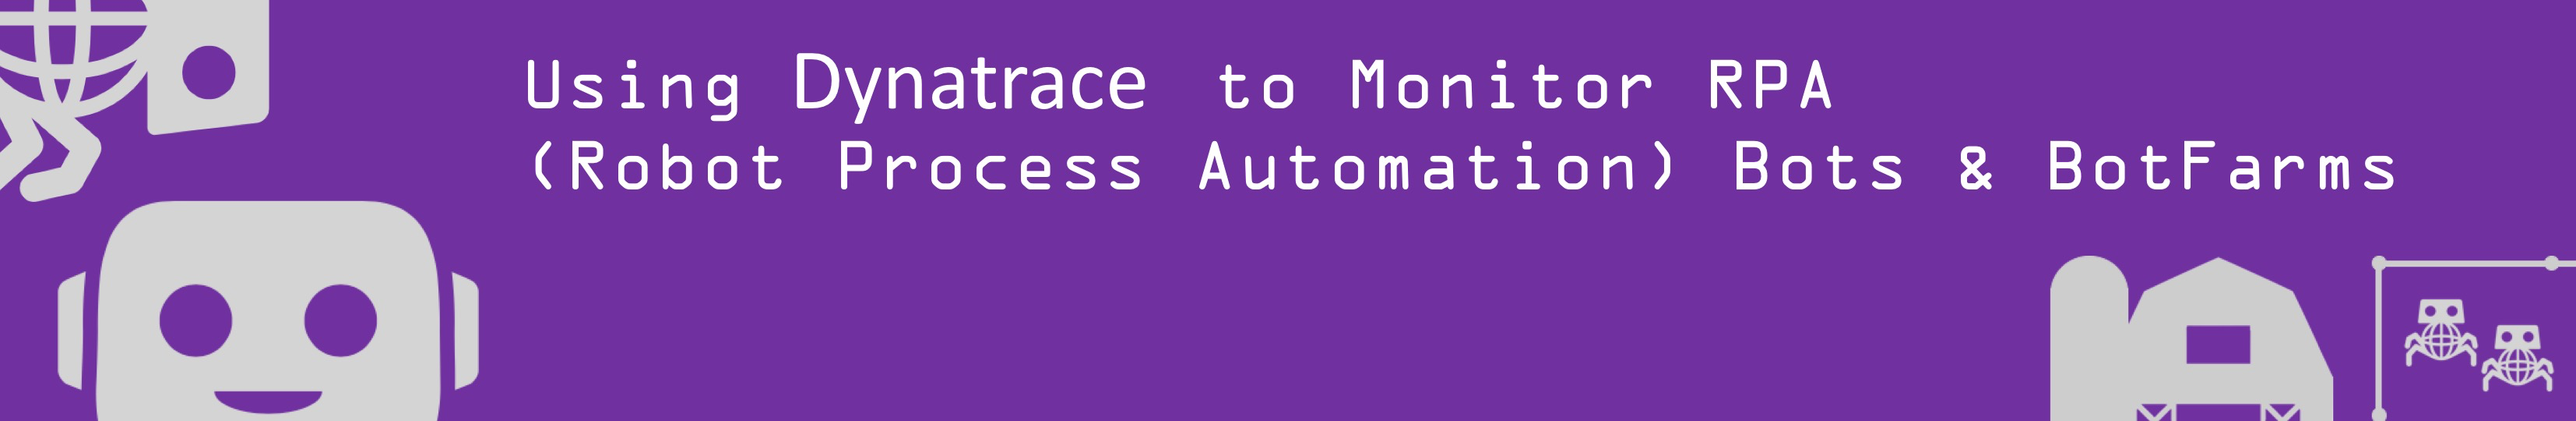 Using Dynatrace to Monitor RPA (Robotic Process Automation) Robots